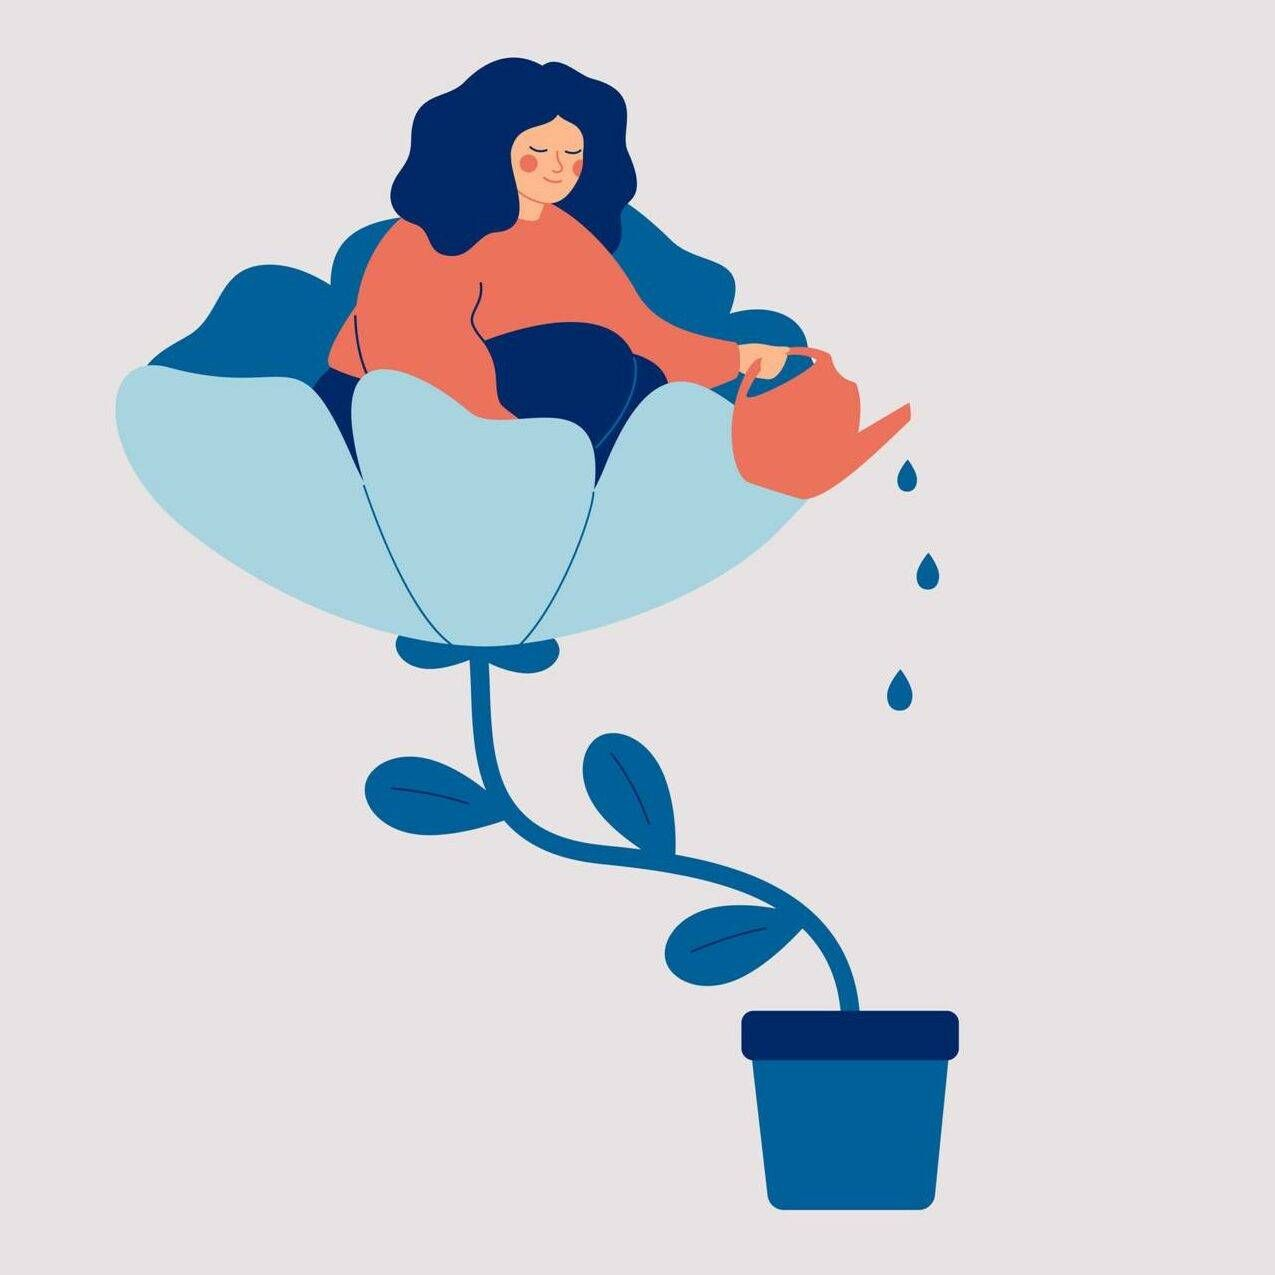 A happy woman sits in the flower and waters it. Smiling girl cares about herself and her future. Concept of love yourself and a healthy lifestyle. Vector illustration. Trauma, post-traumatic growth, Rewire, PBS